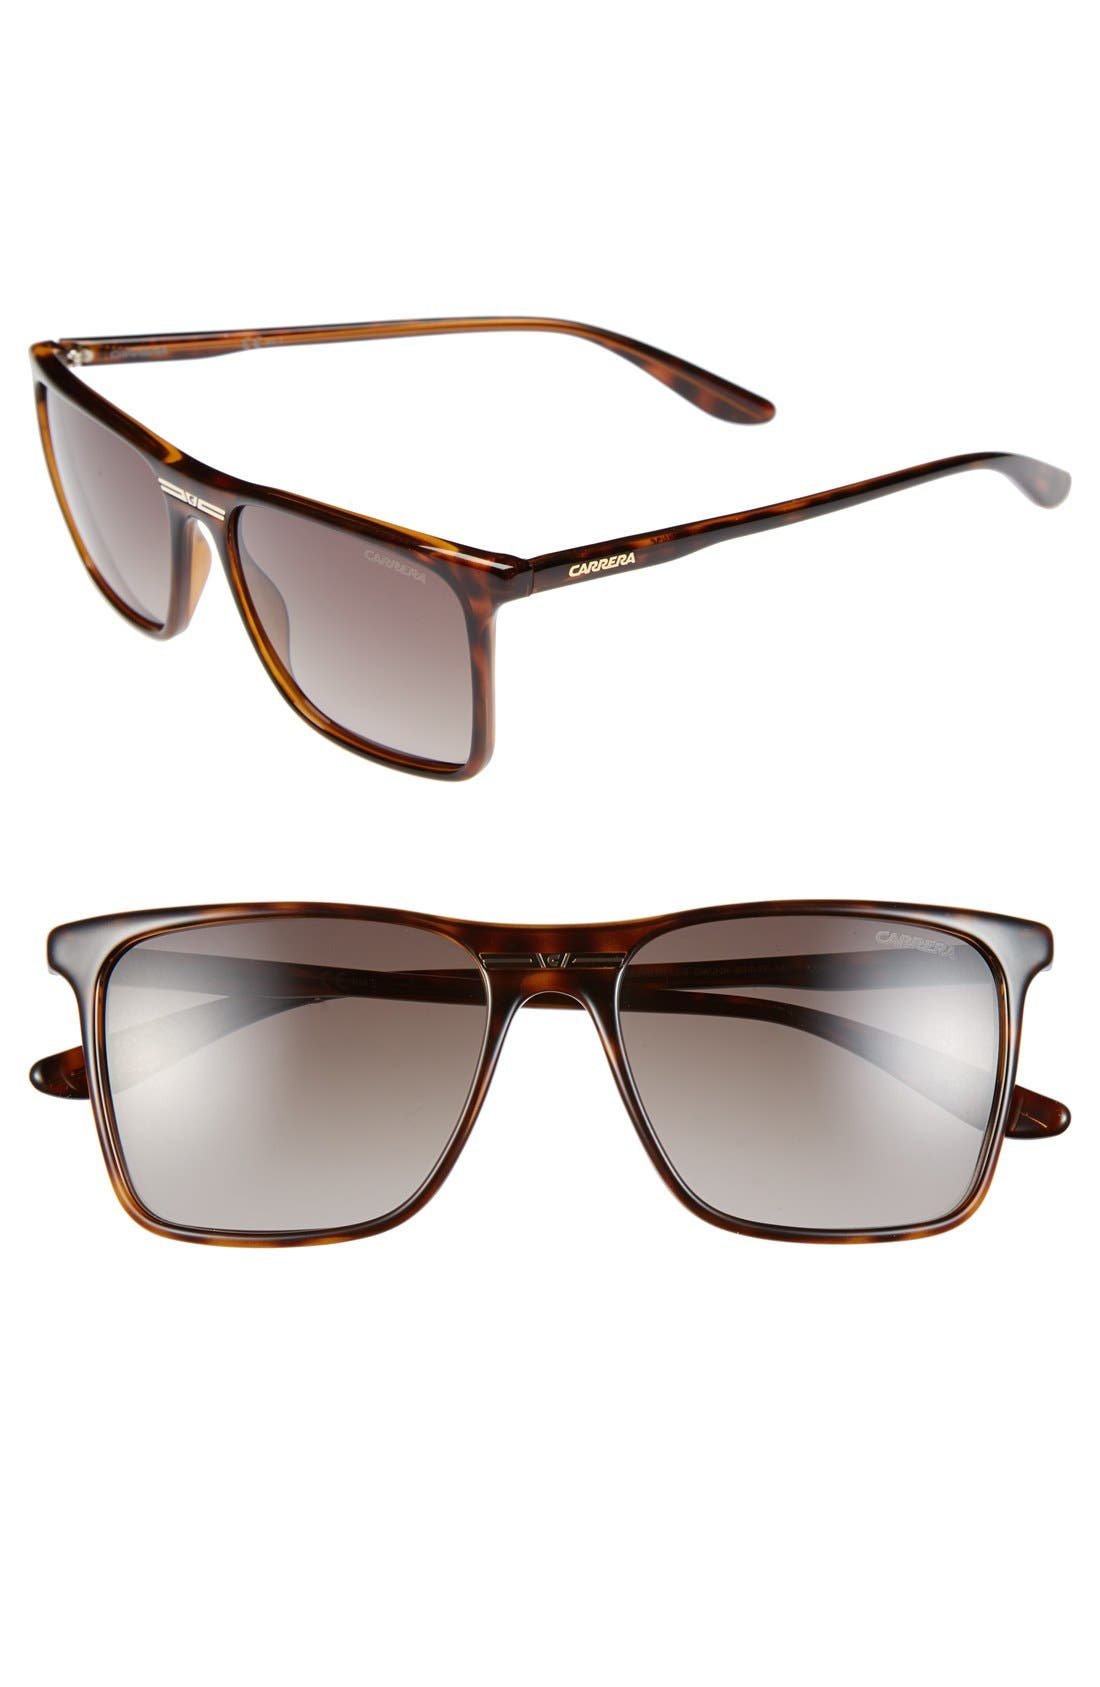 Main Image - Carrera Eyewear 55mm Sunglasses